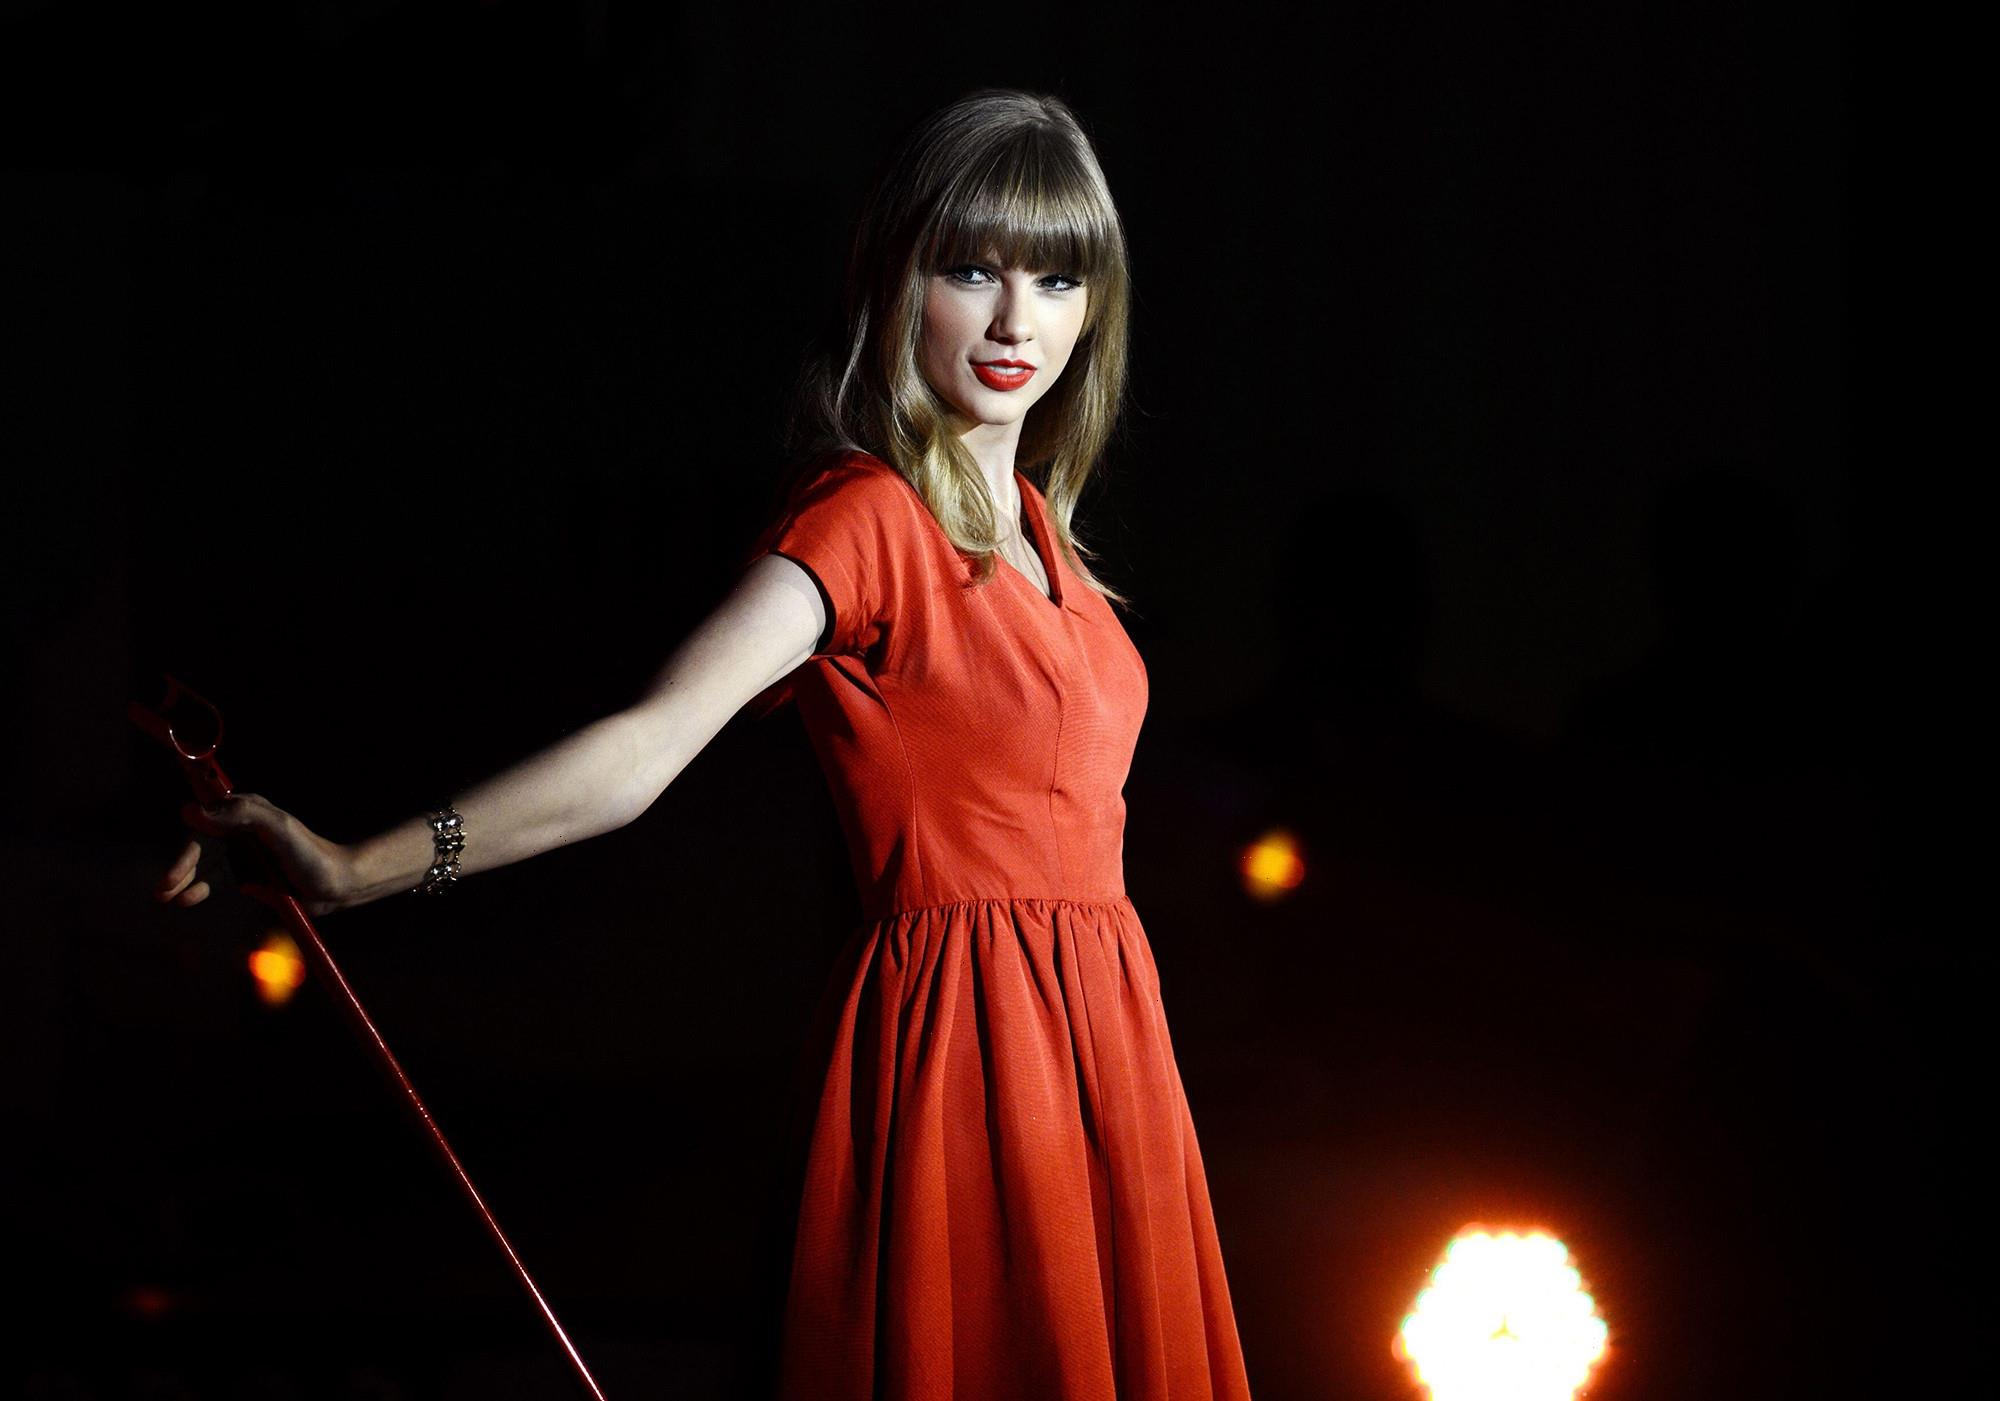 Taylor Swift to release her 'version' of 'Red' album this year